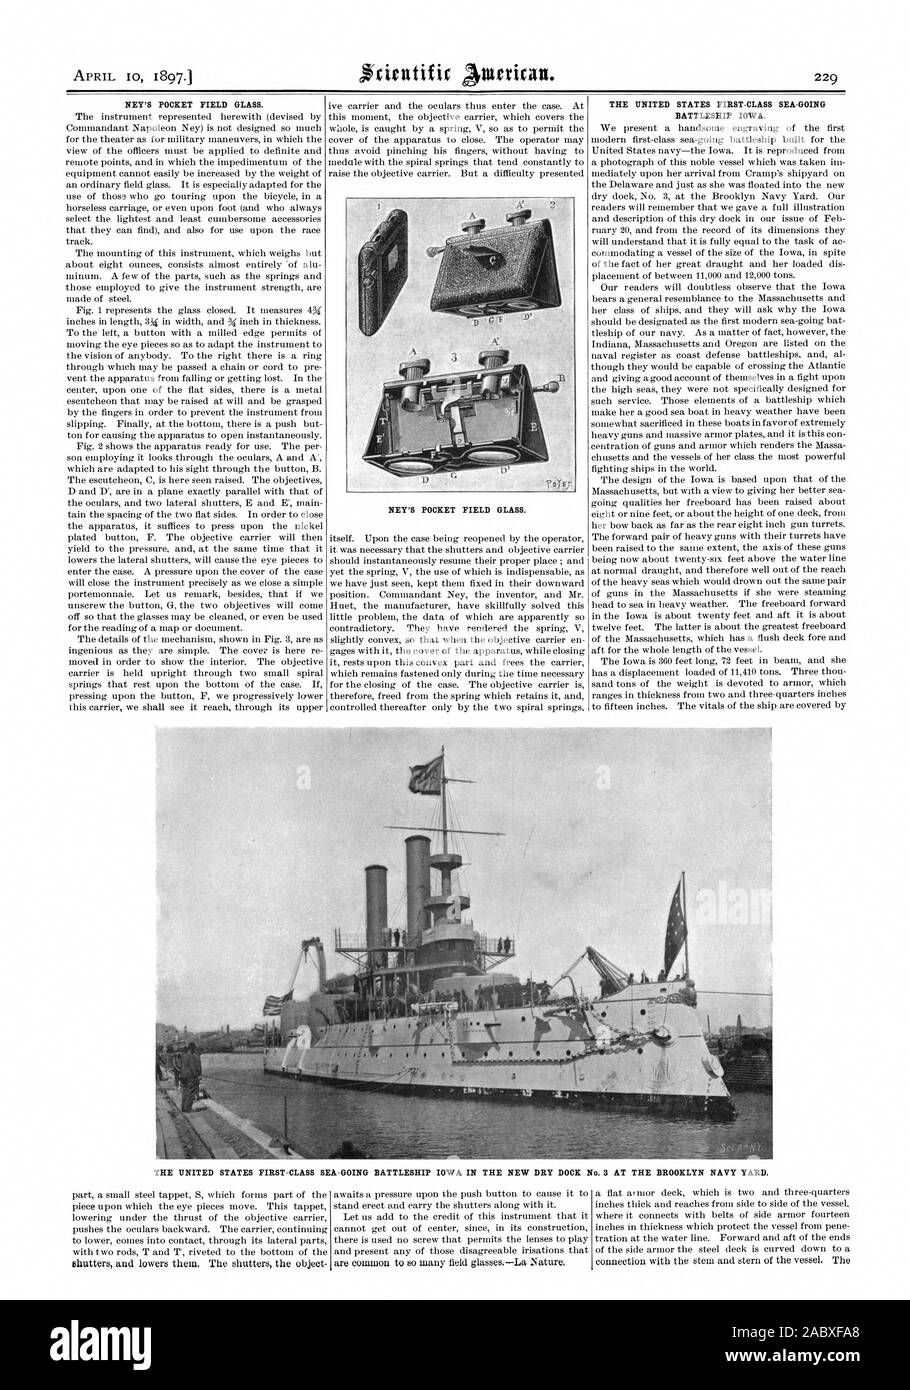 APRIL 10 1897. NEY'S POCKET FIELD GLASS. NEY'S POCKET FIELD GLASS. THE UNITED STATES FIRST-CLASS SEA-GOING BATTLESHIP IOWA. asp? THE UNITED STATES FIRST-CLASS SEA-GOING BATTLESHIP IOWA IN THE NEW DRY DOCK No. 3 AT THE BROOKLYN NAVY YARD., scientific american, 1897-04-10 Stock Photo